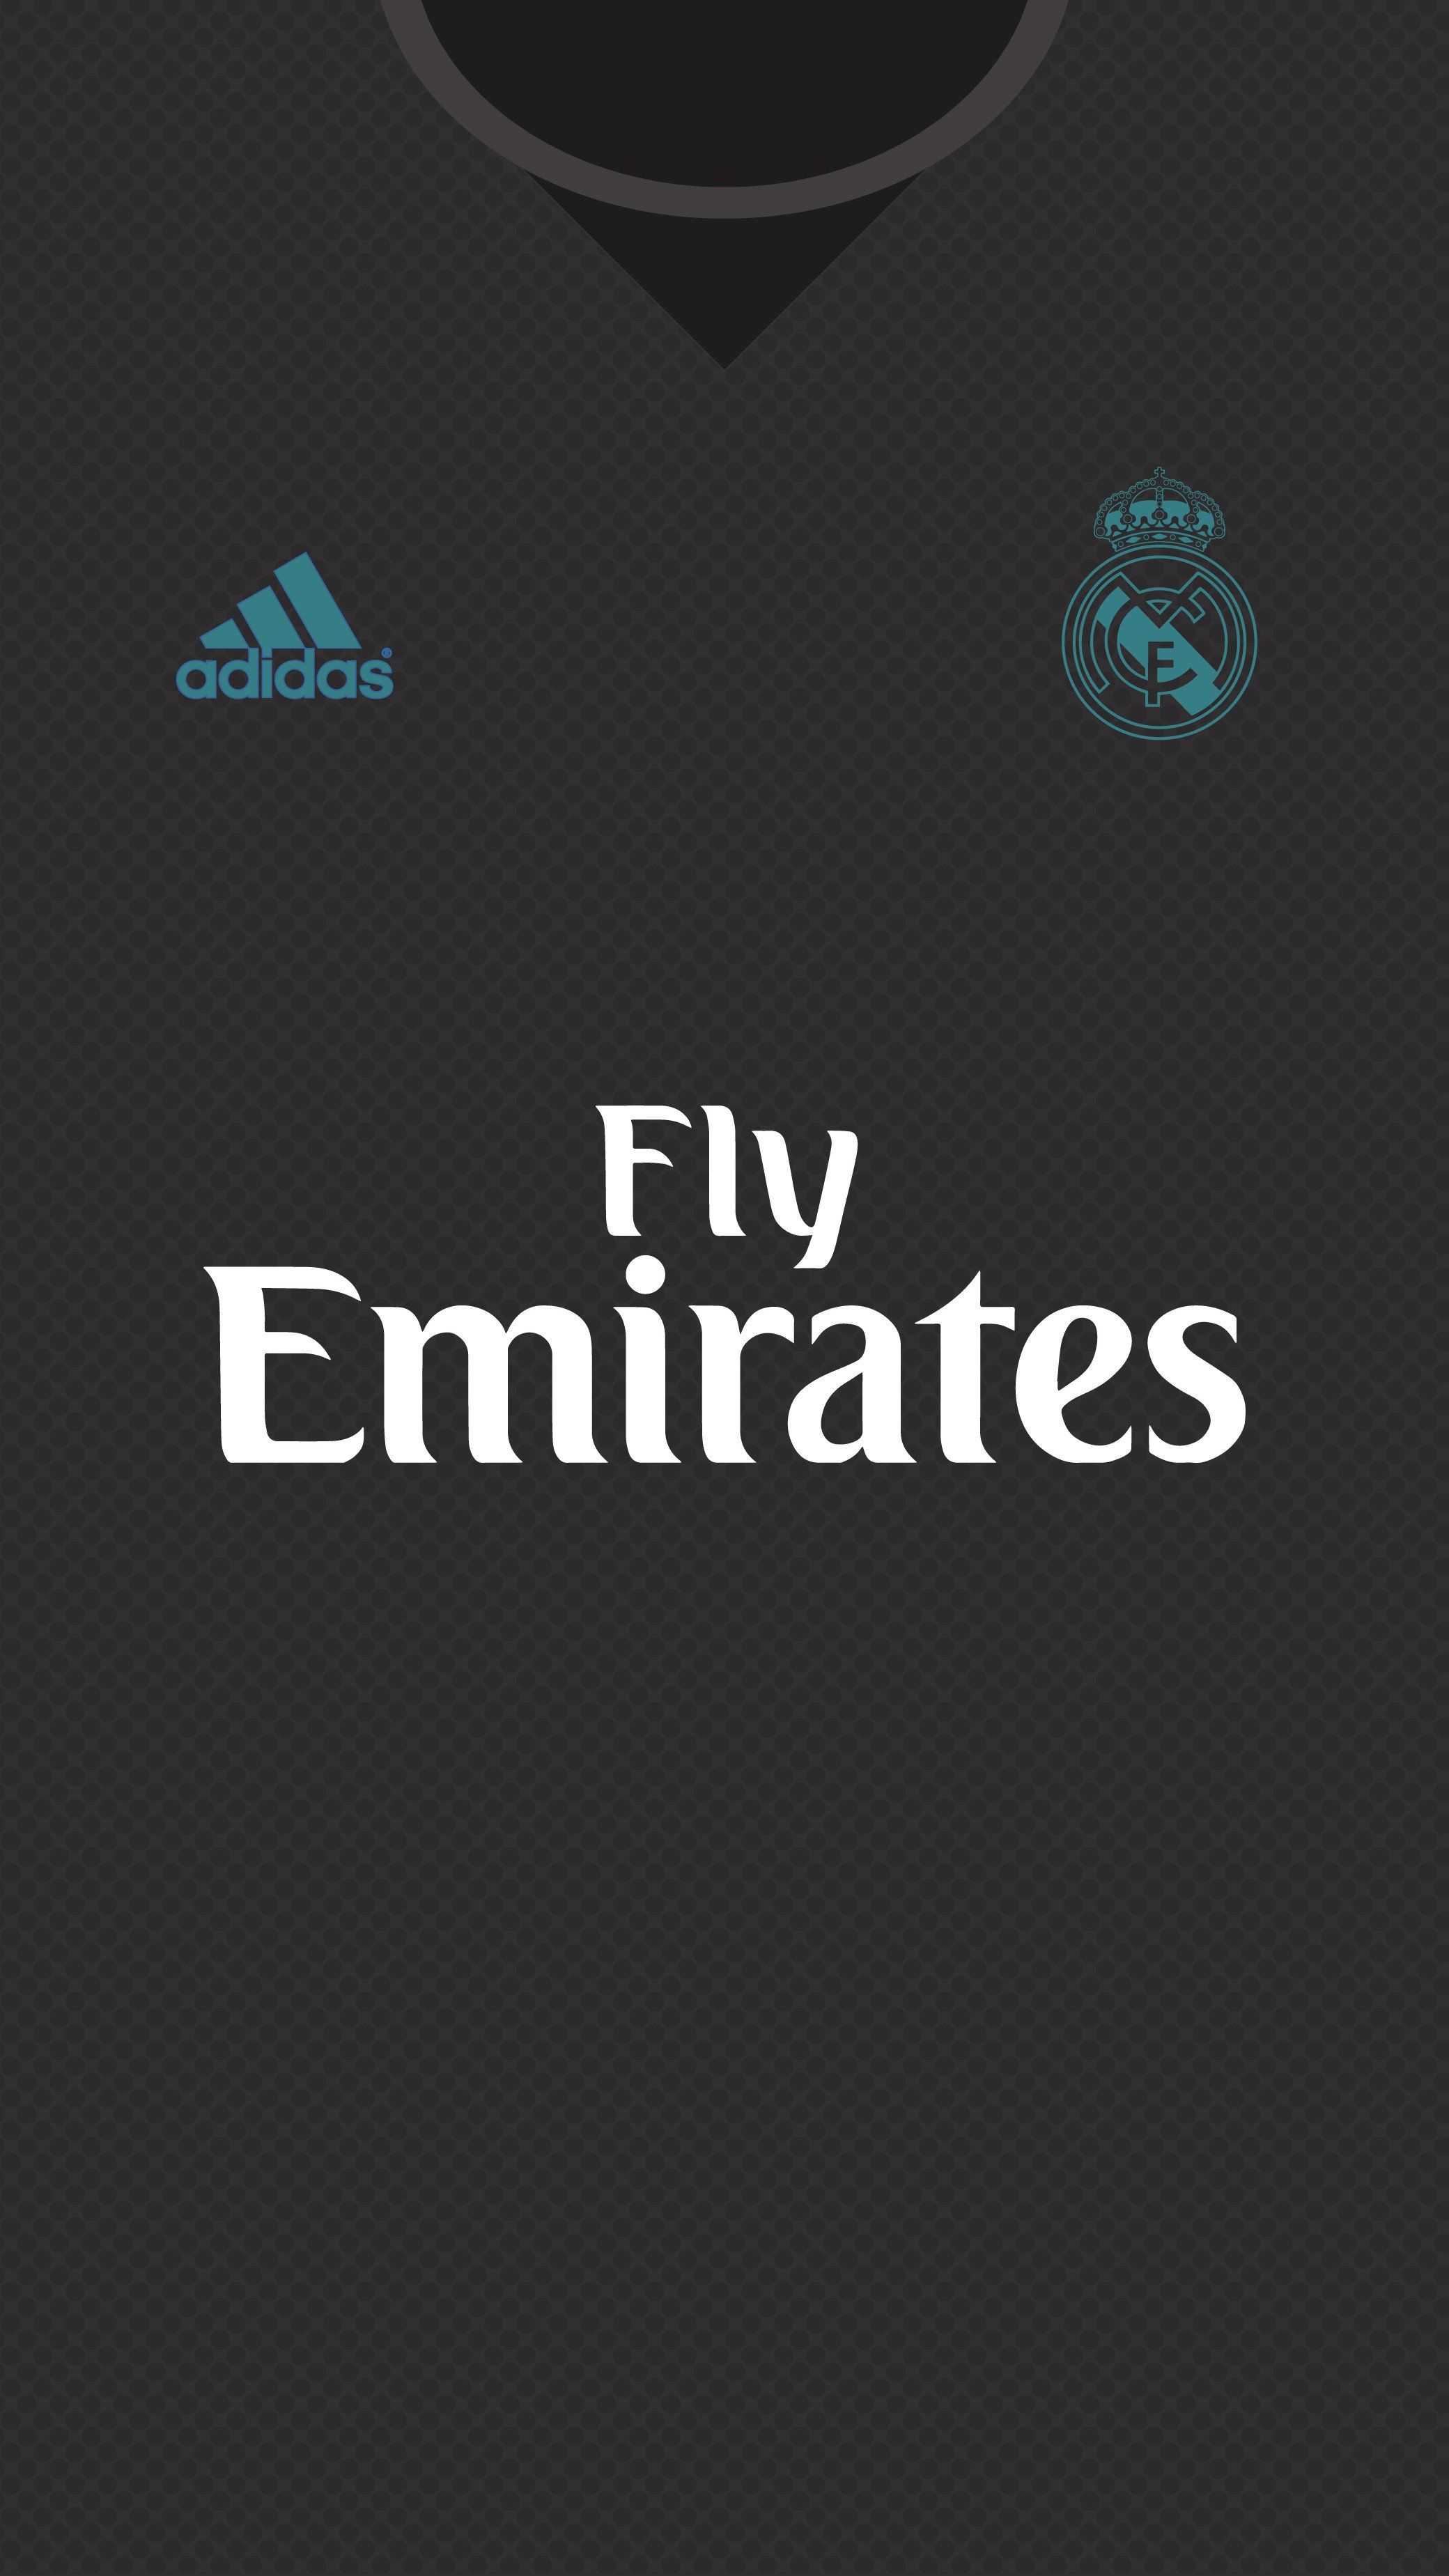 Real Madrid HD Wallpaper 2018 64 images 2080x3698